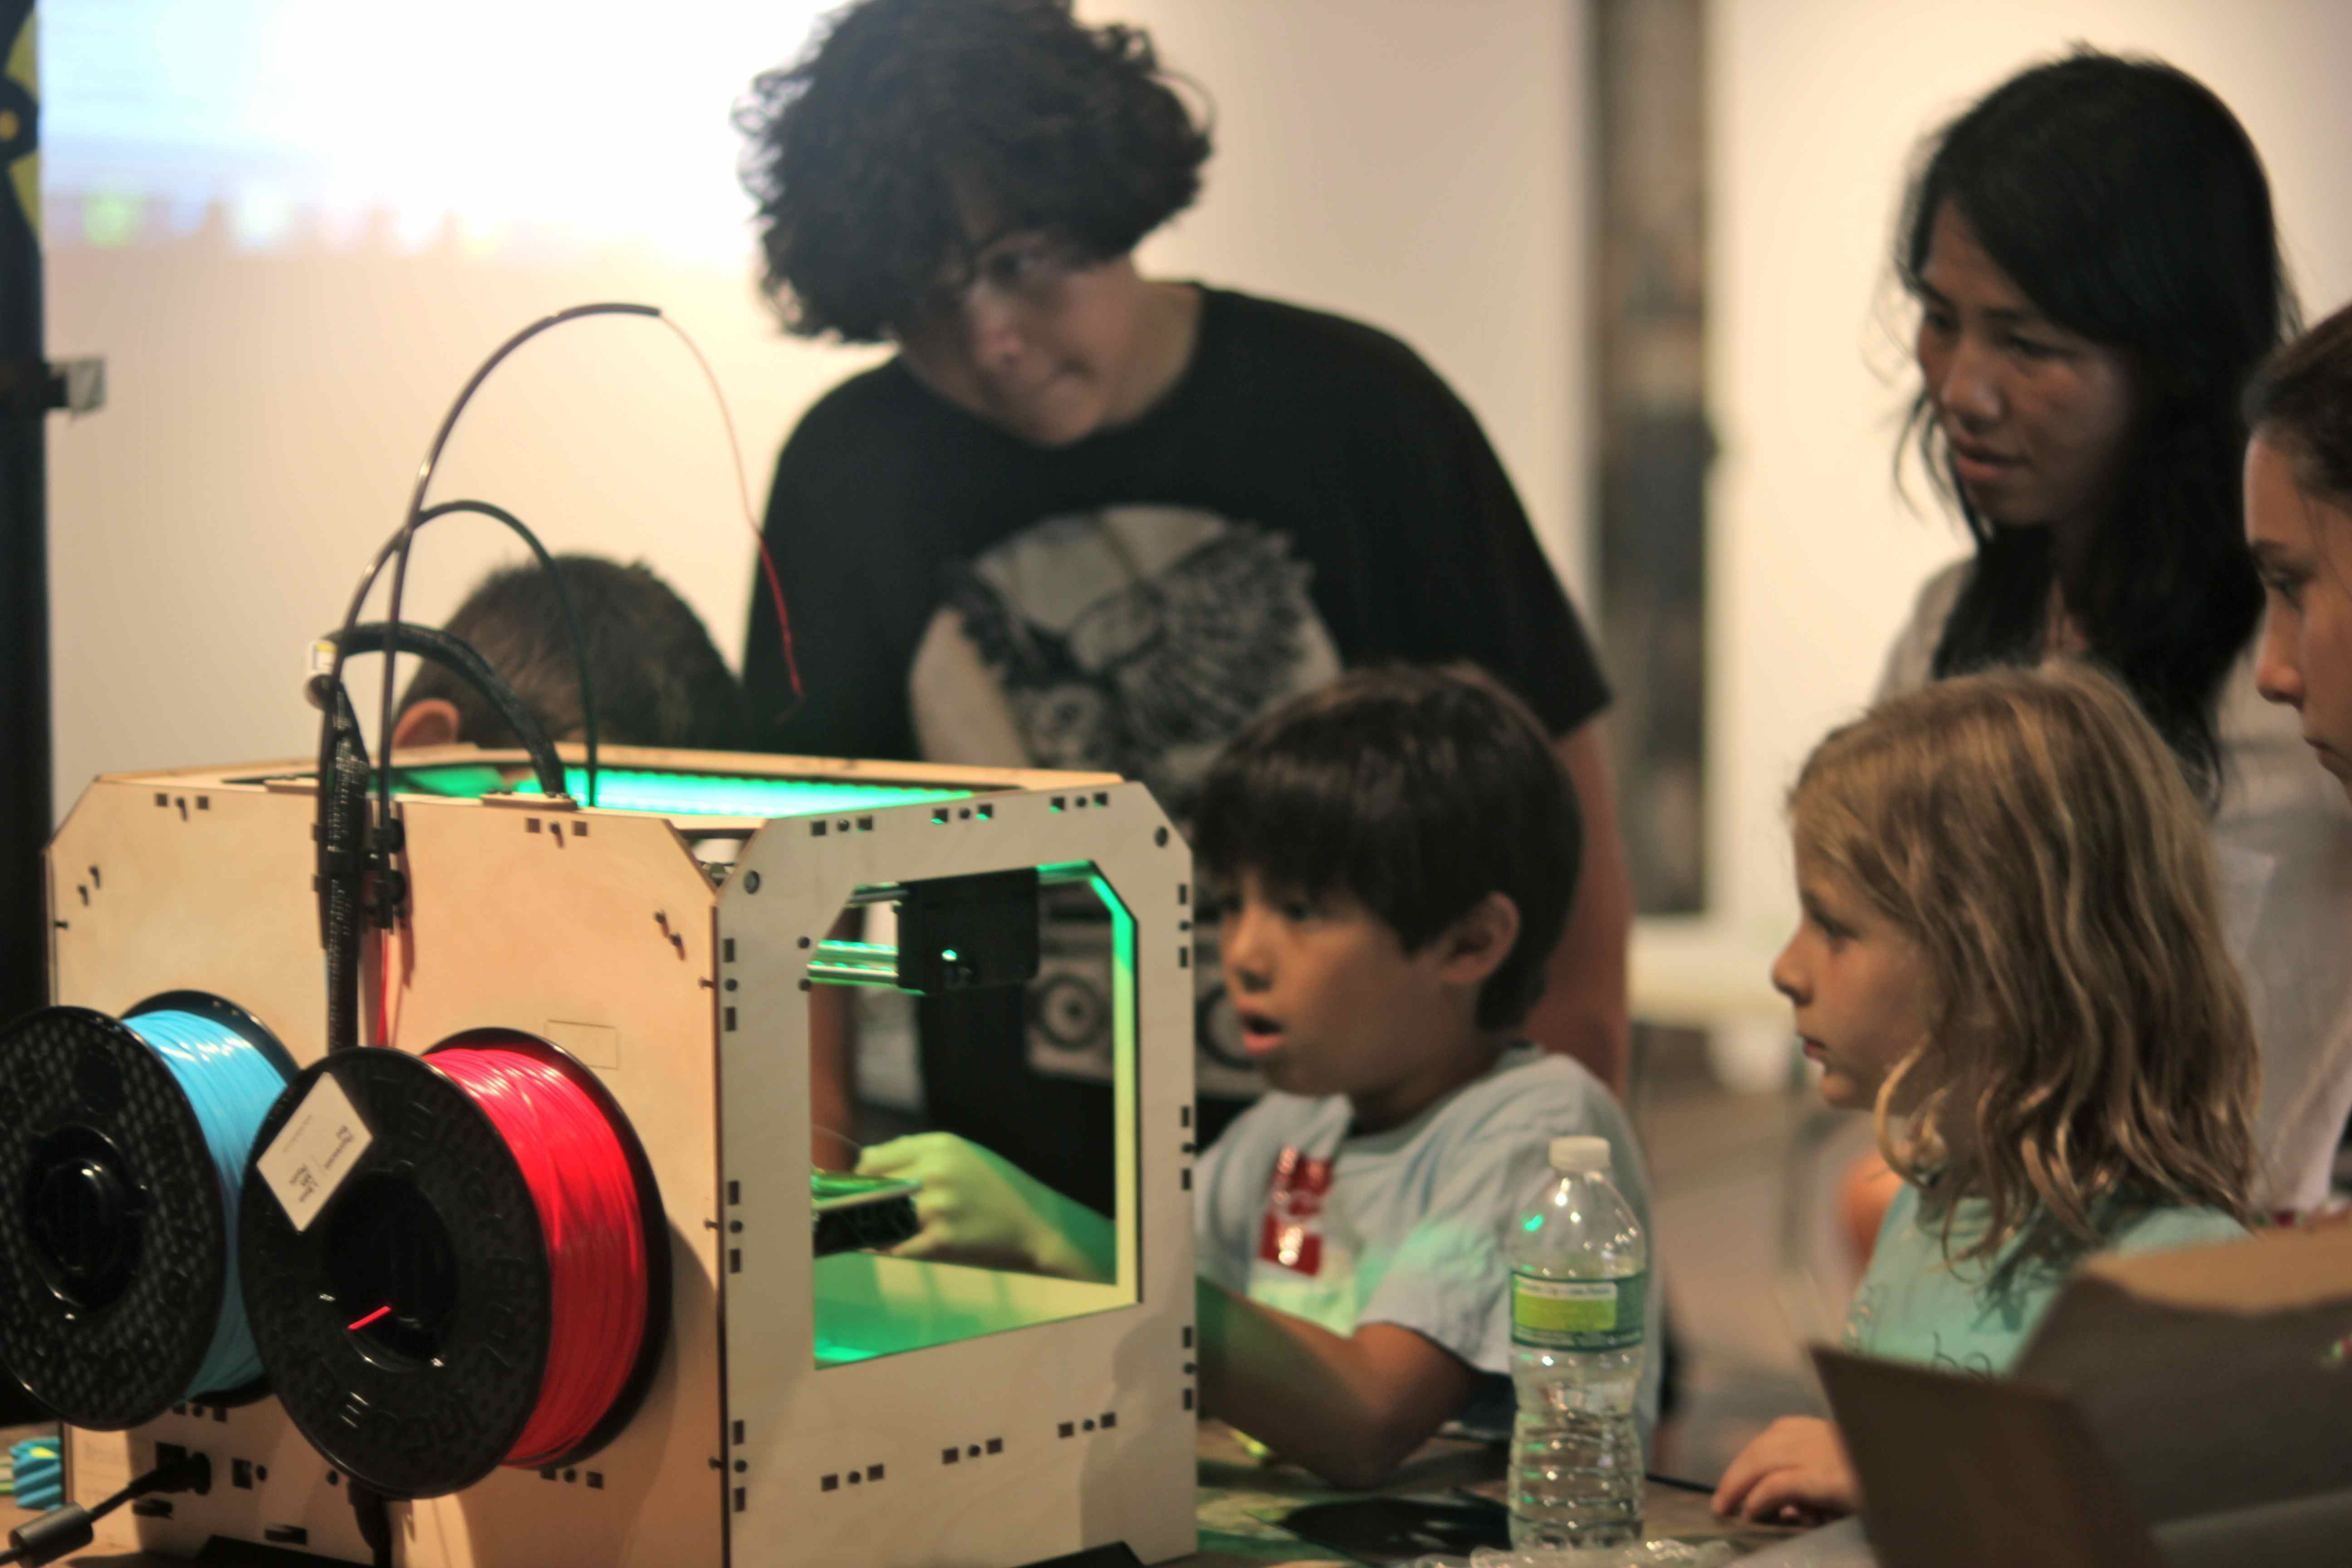 NYC Makery: A Pop-Up Makerspace for Kids